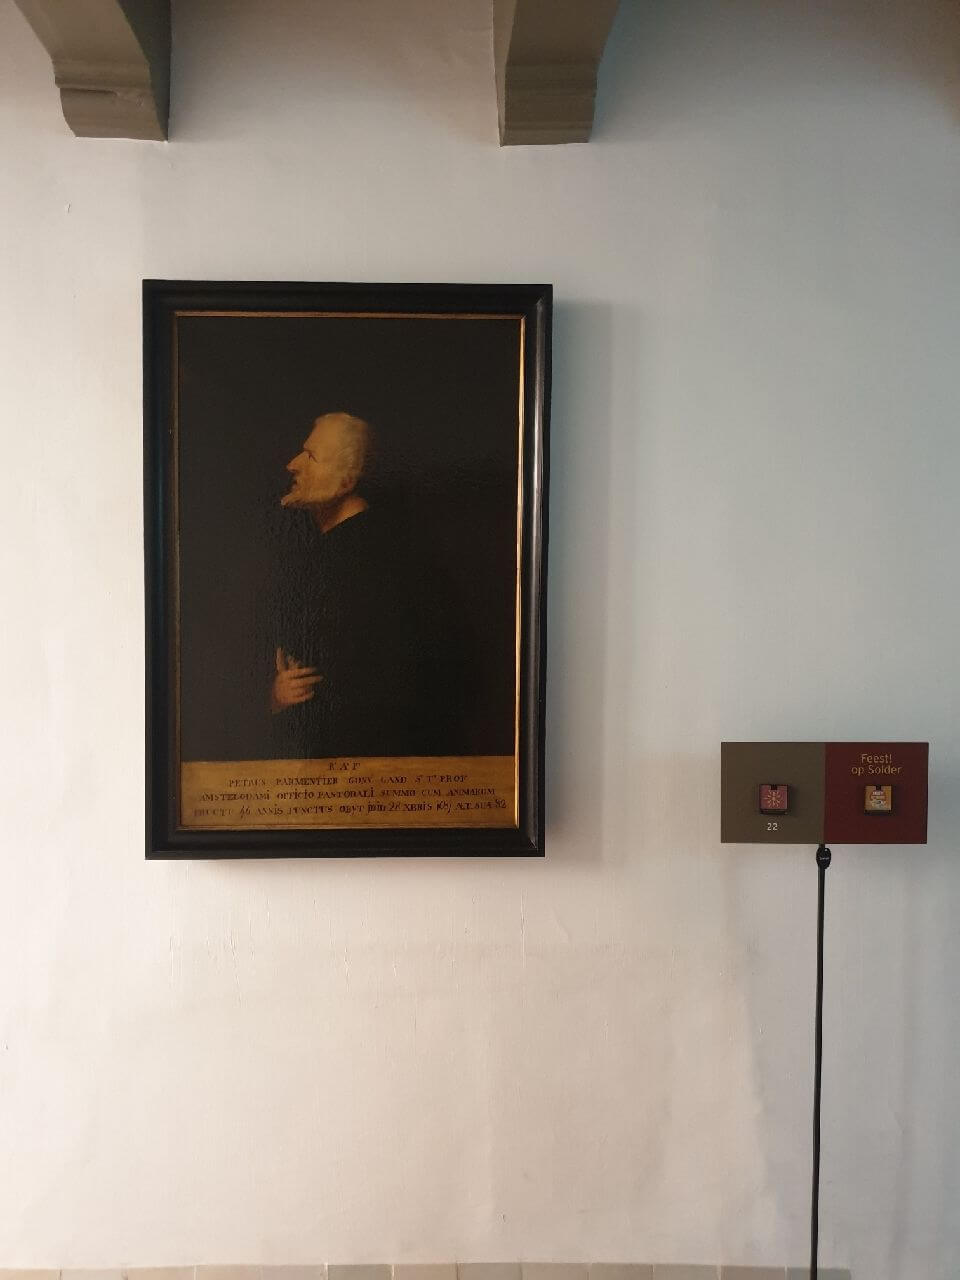 Petrus Parmentier - First Priest at the Ons Lieve Heer op Solder church Amsterdam